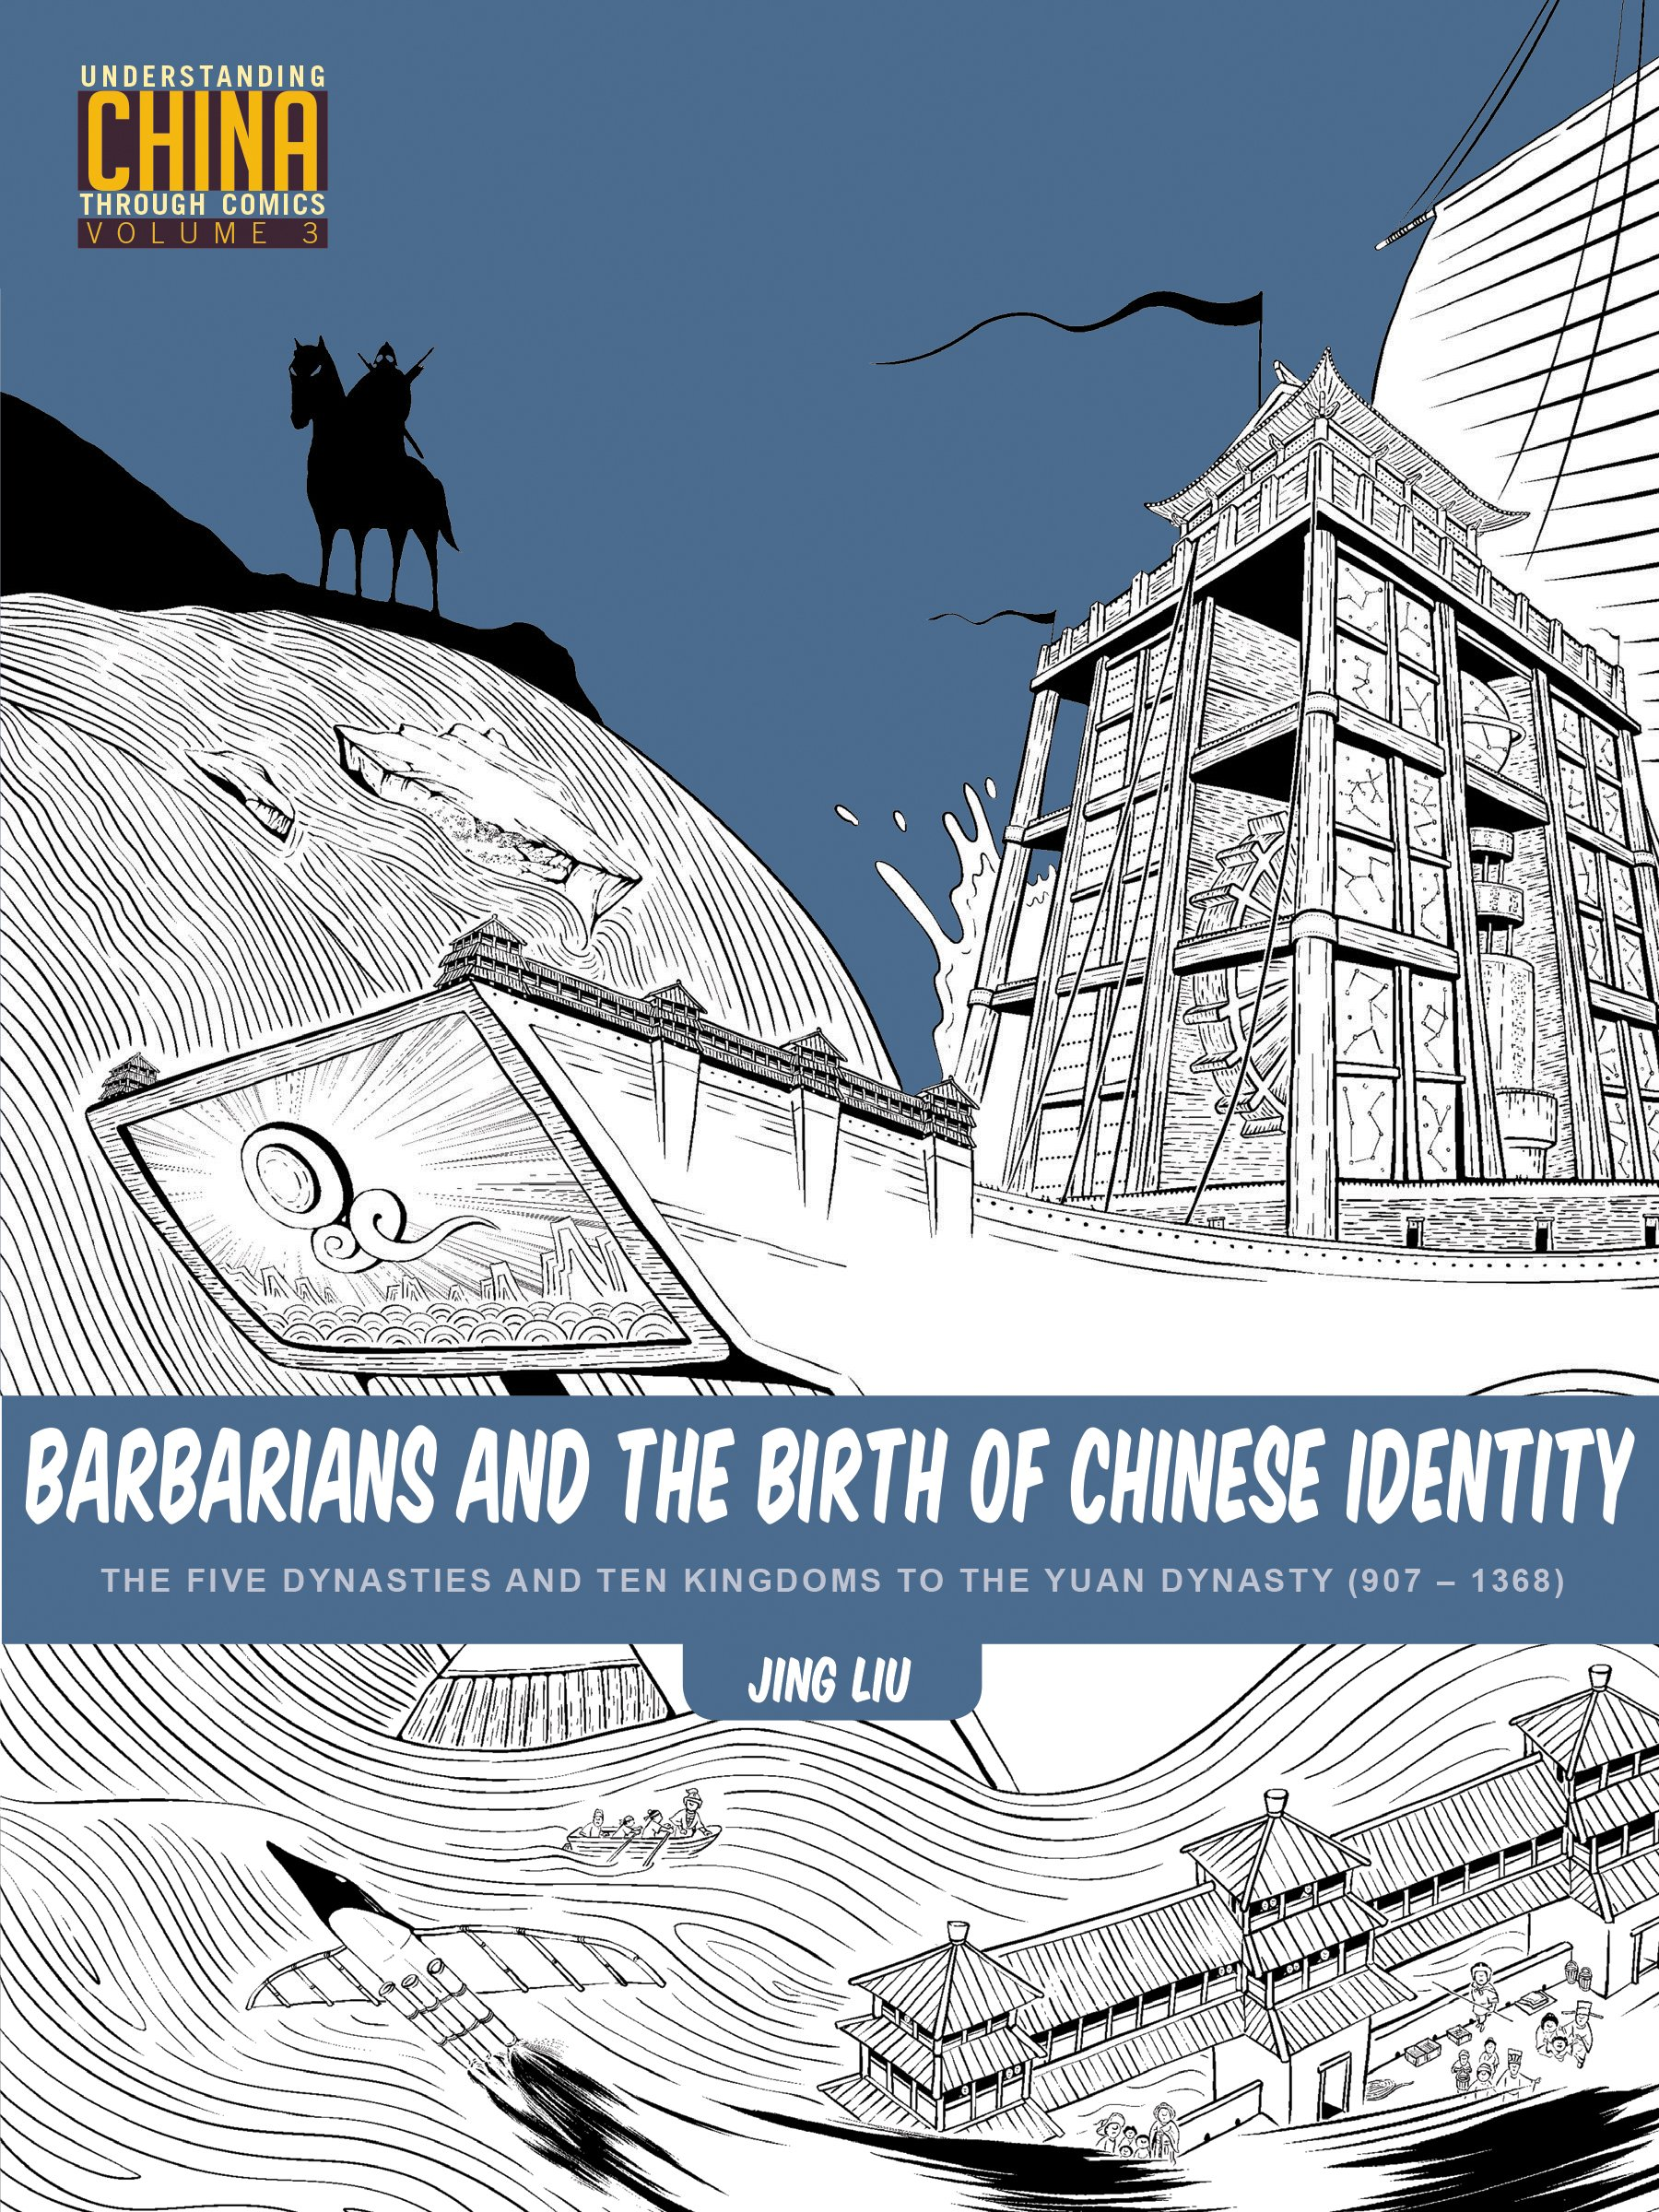 barbarians-and-the-birth-of-chinese-identity-the-five-dynasties-and-ten-kingdoms-to-the-yuan-dynasty-907-1368-understanding-china-through-comics